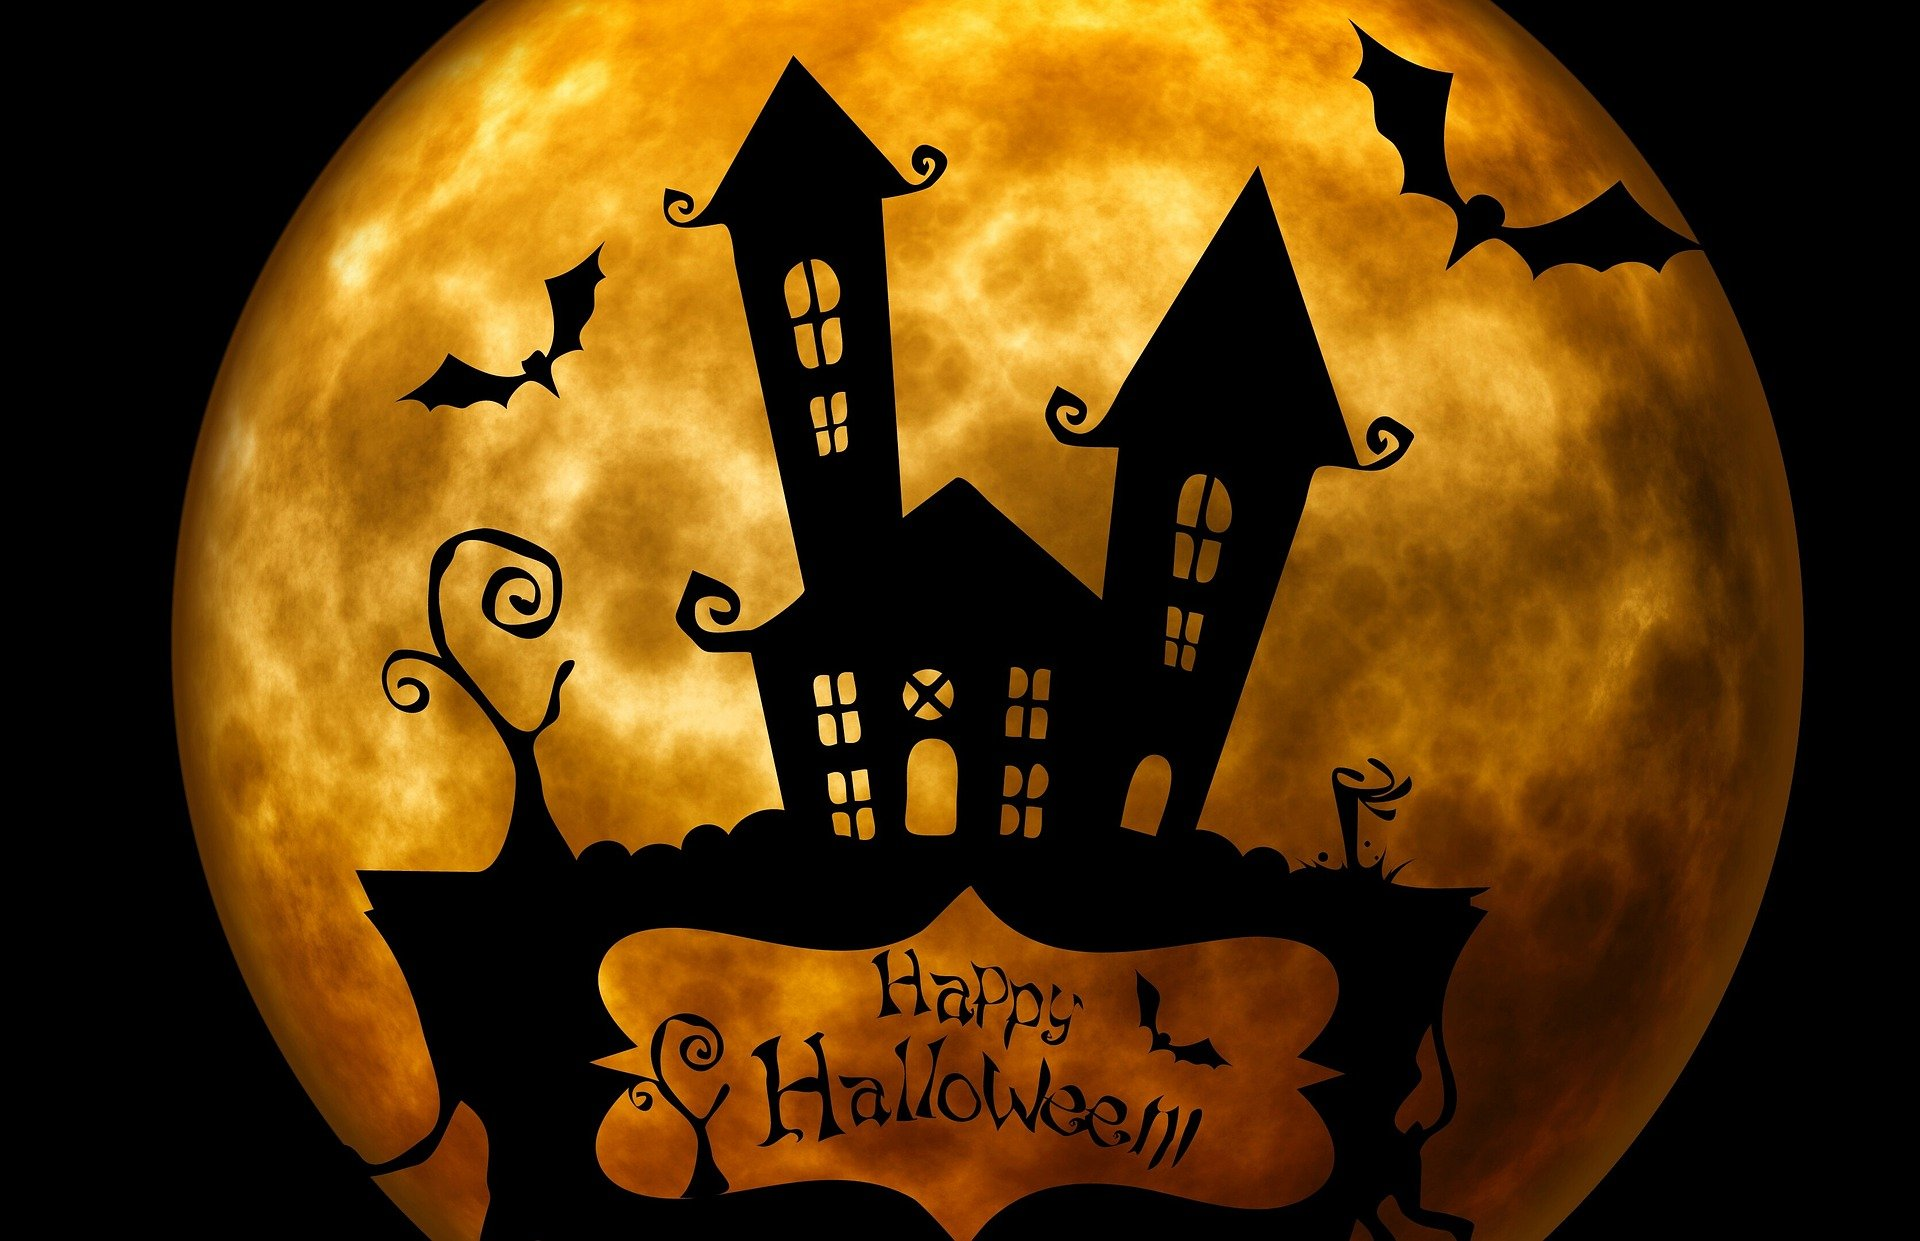 Halloween Flicks And Food- Why Not Host An Outdoor Screening?